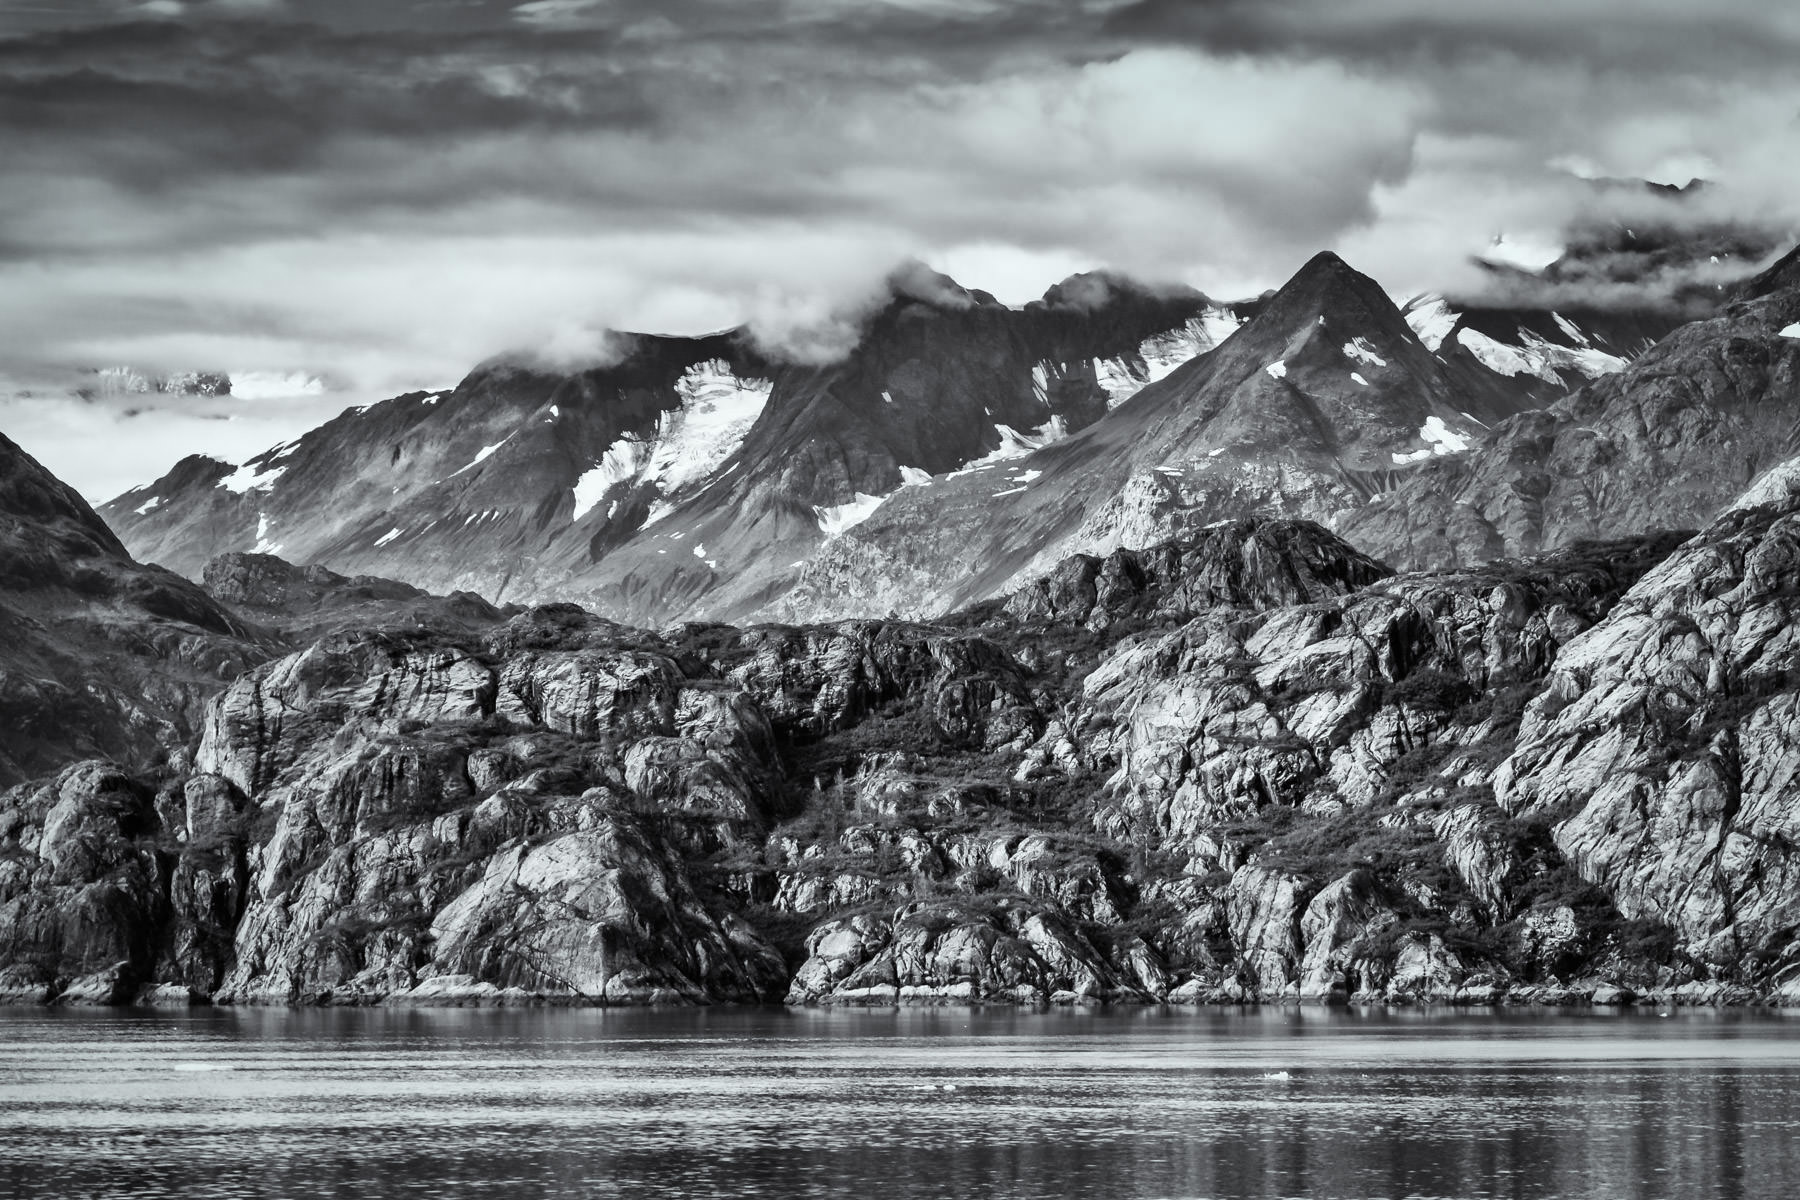 Clouds obscure the peaks of mountains in Alaska's Glacier Bay National Park.